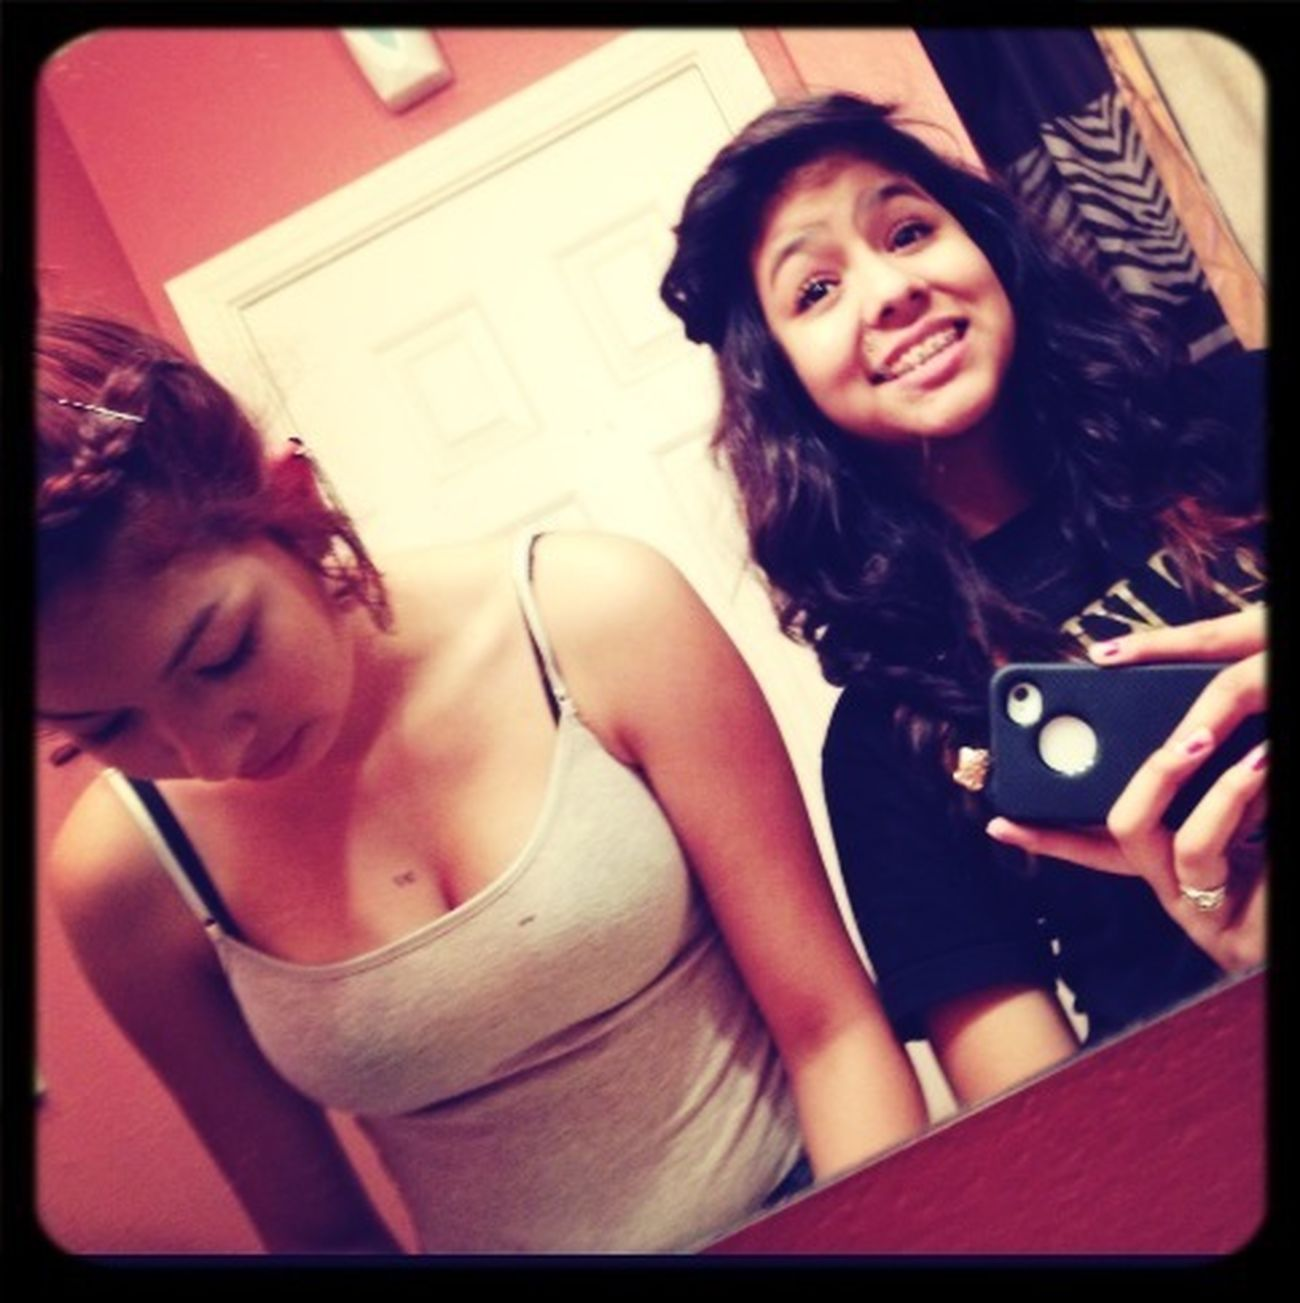 Im Short /.\❤ But Me & My Bestfriend